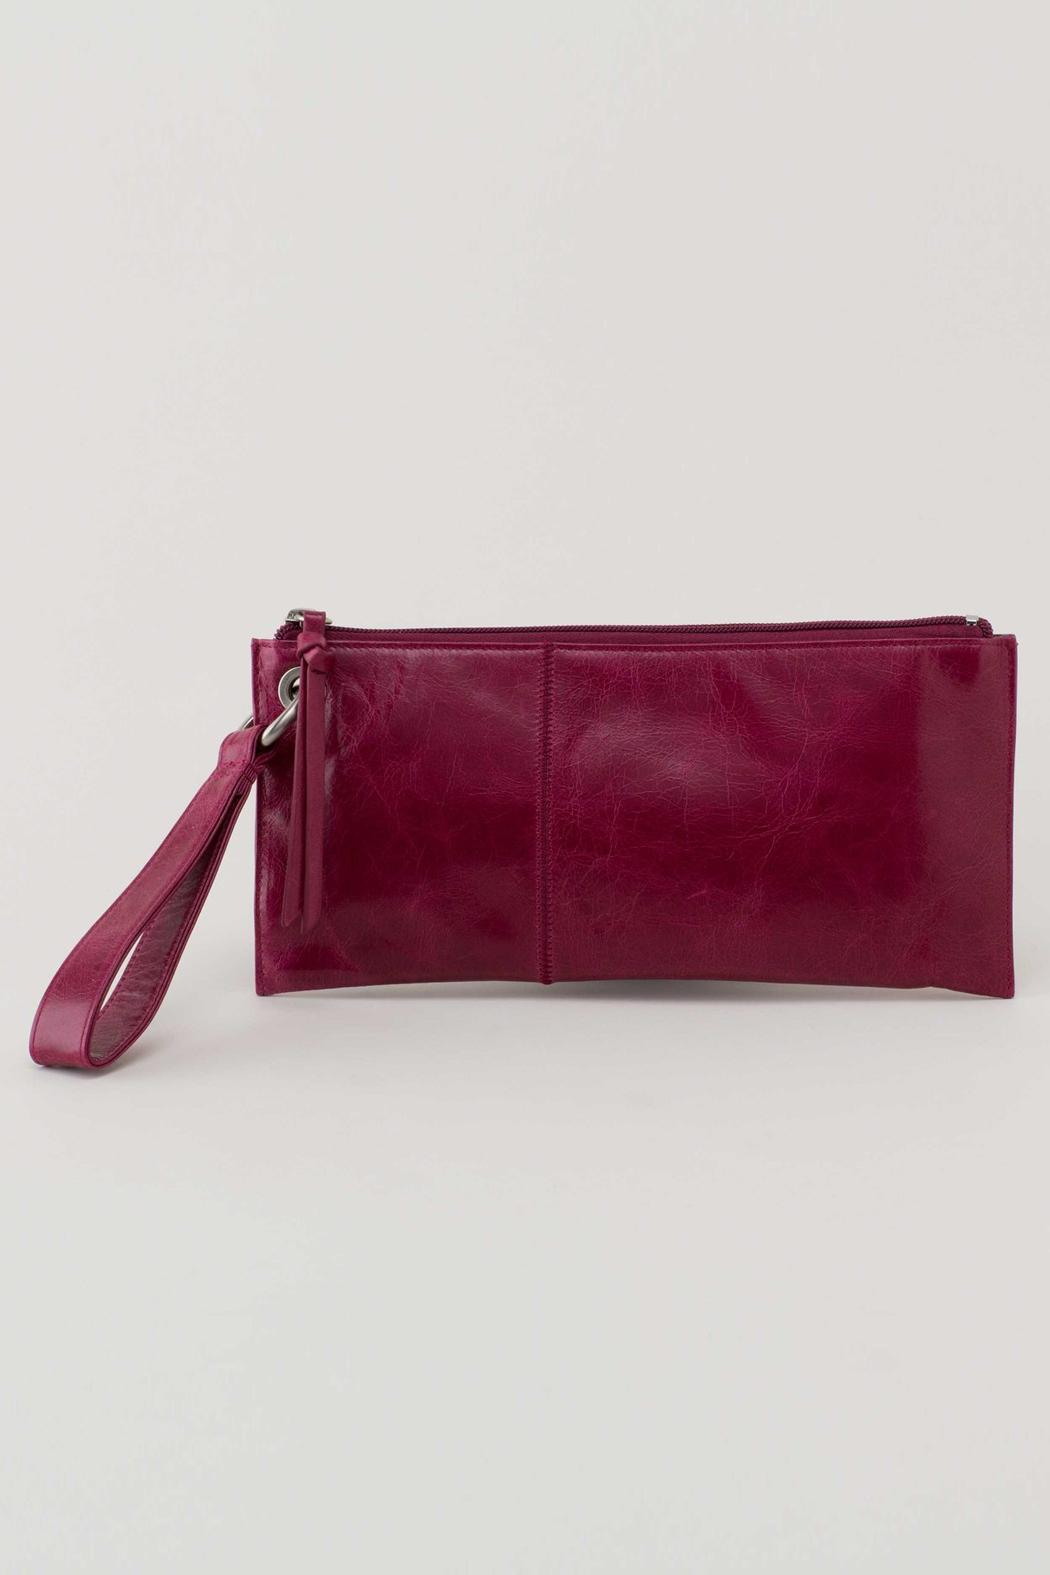 Leather Statement Clutch - THE FAIRY by VIDA VIDA FYjh7